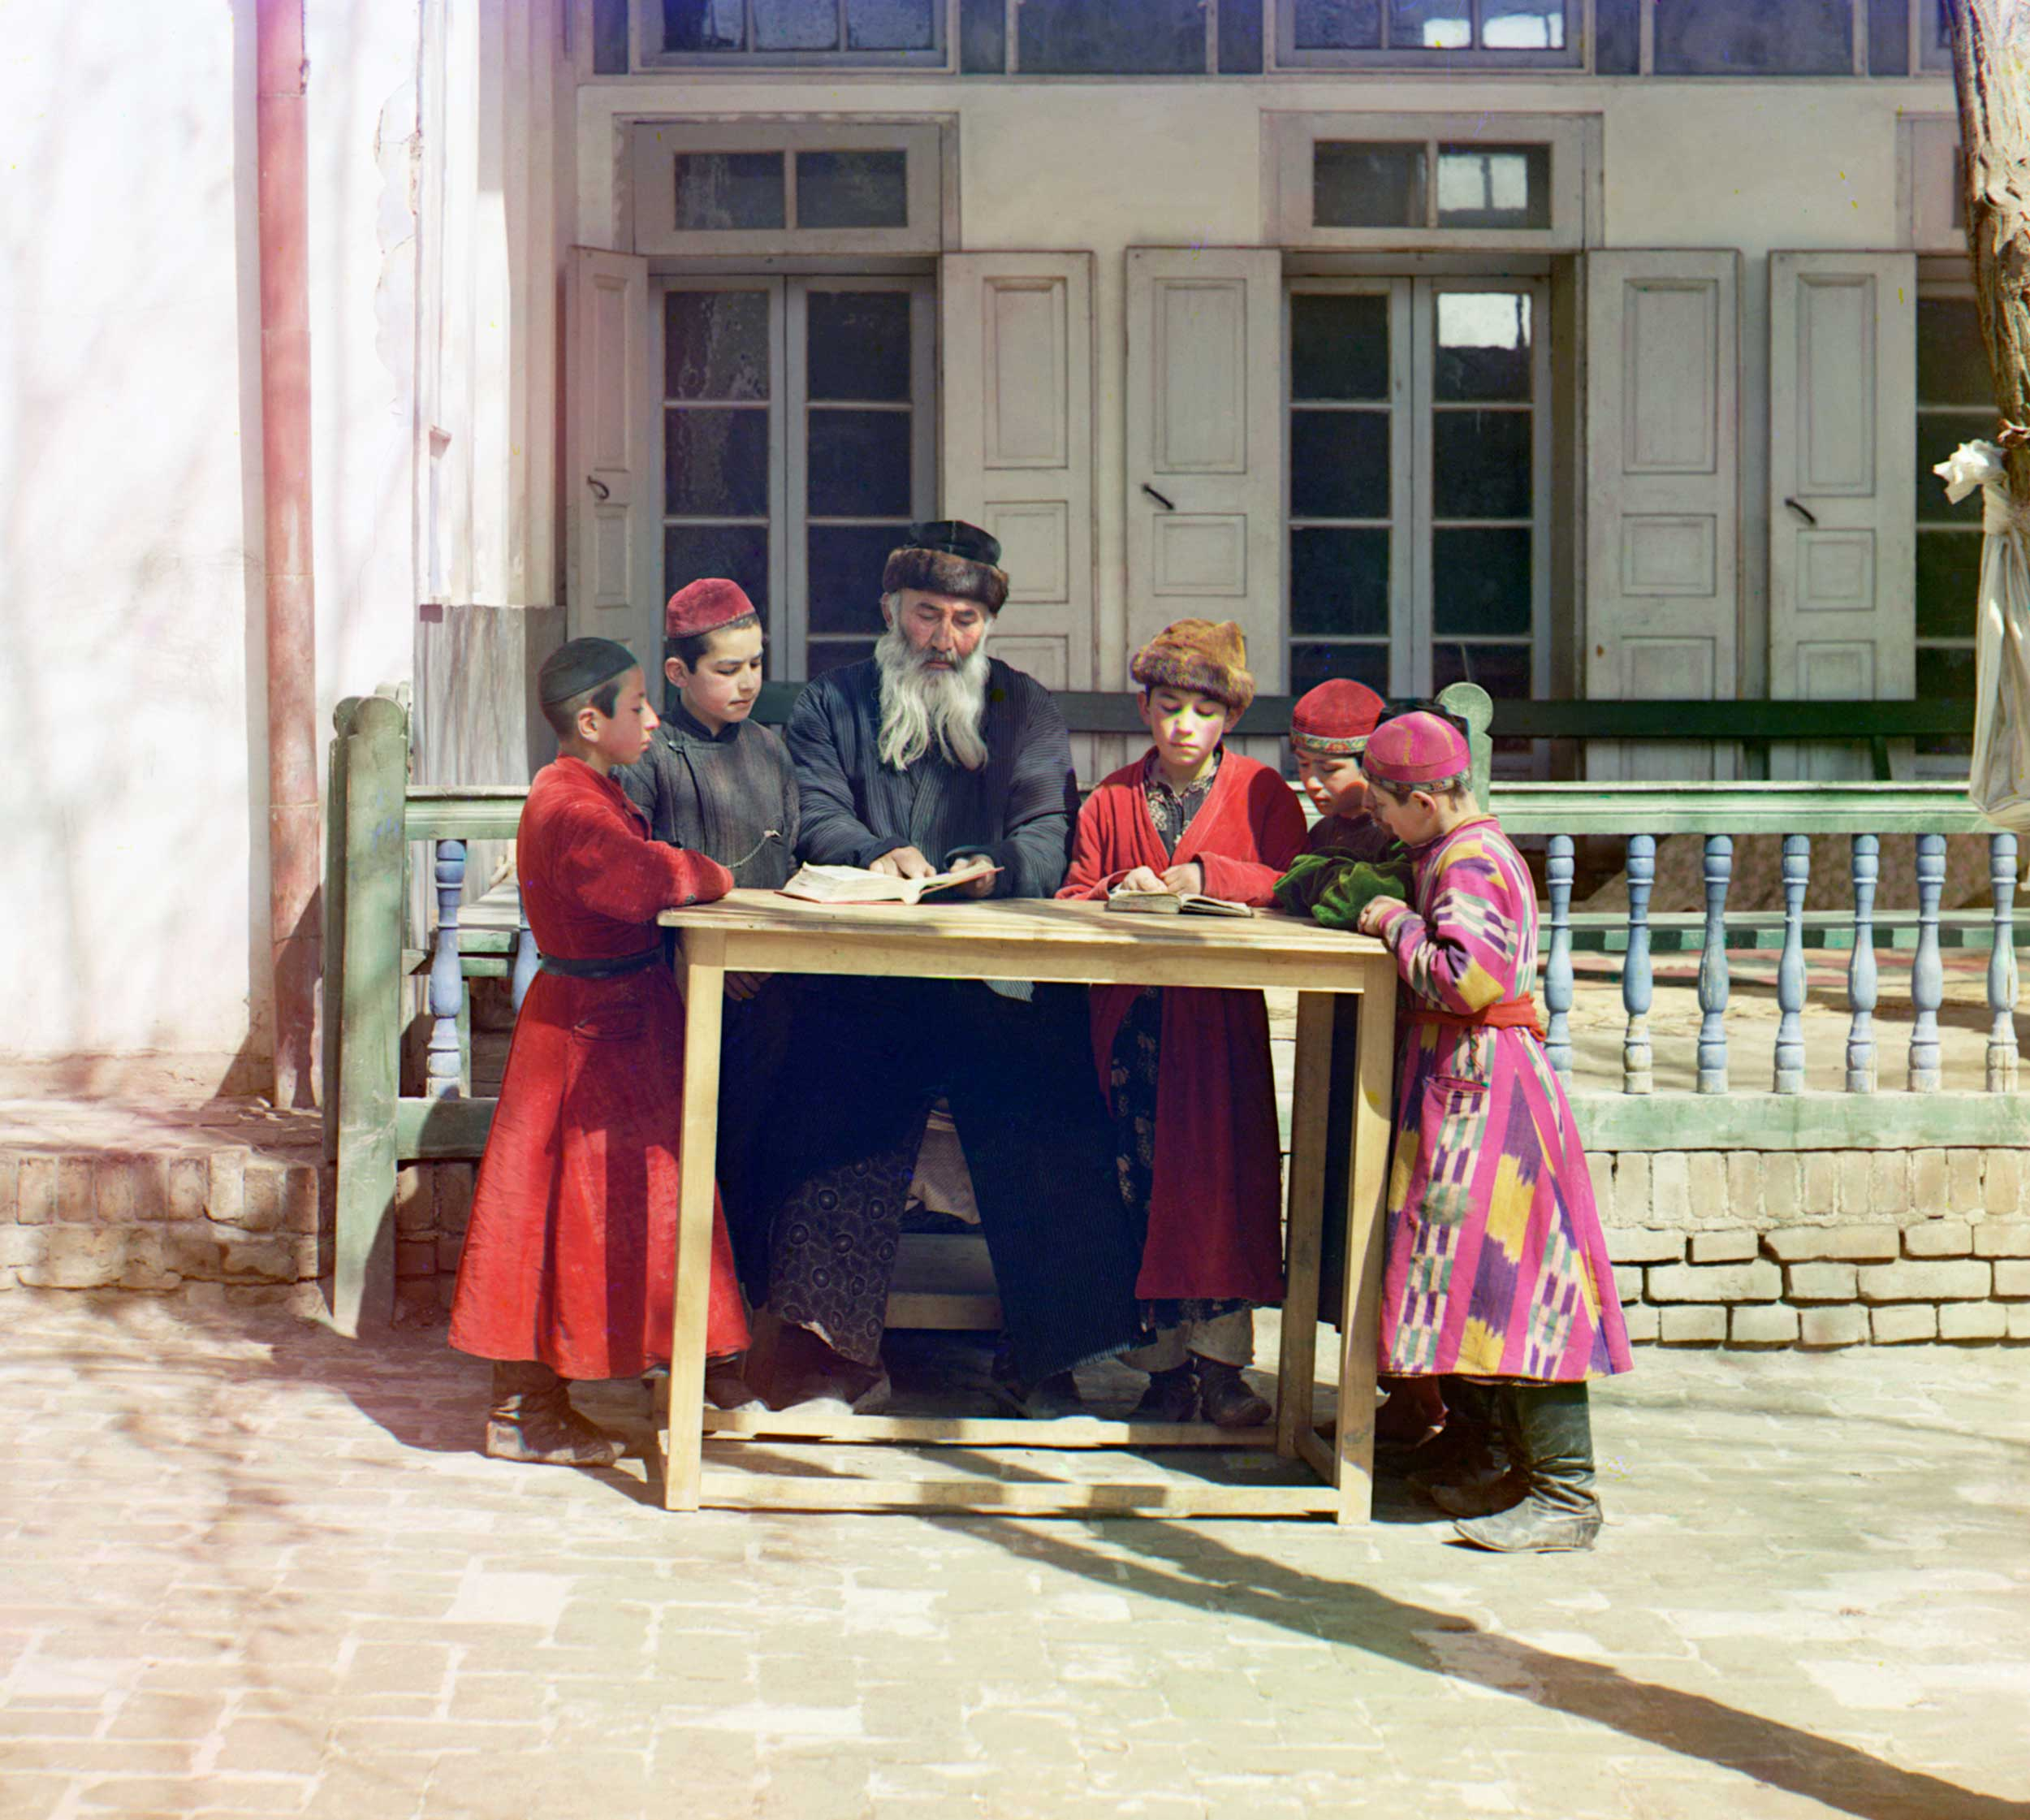 1911 - Rabbi and students